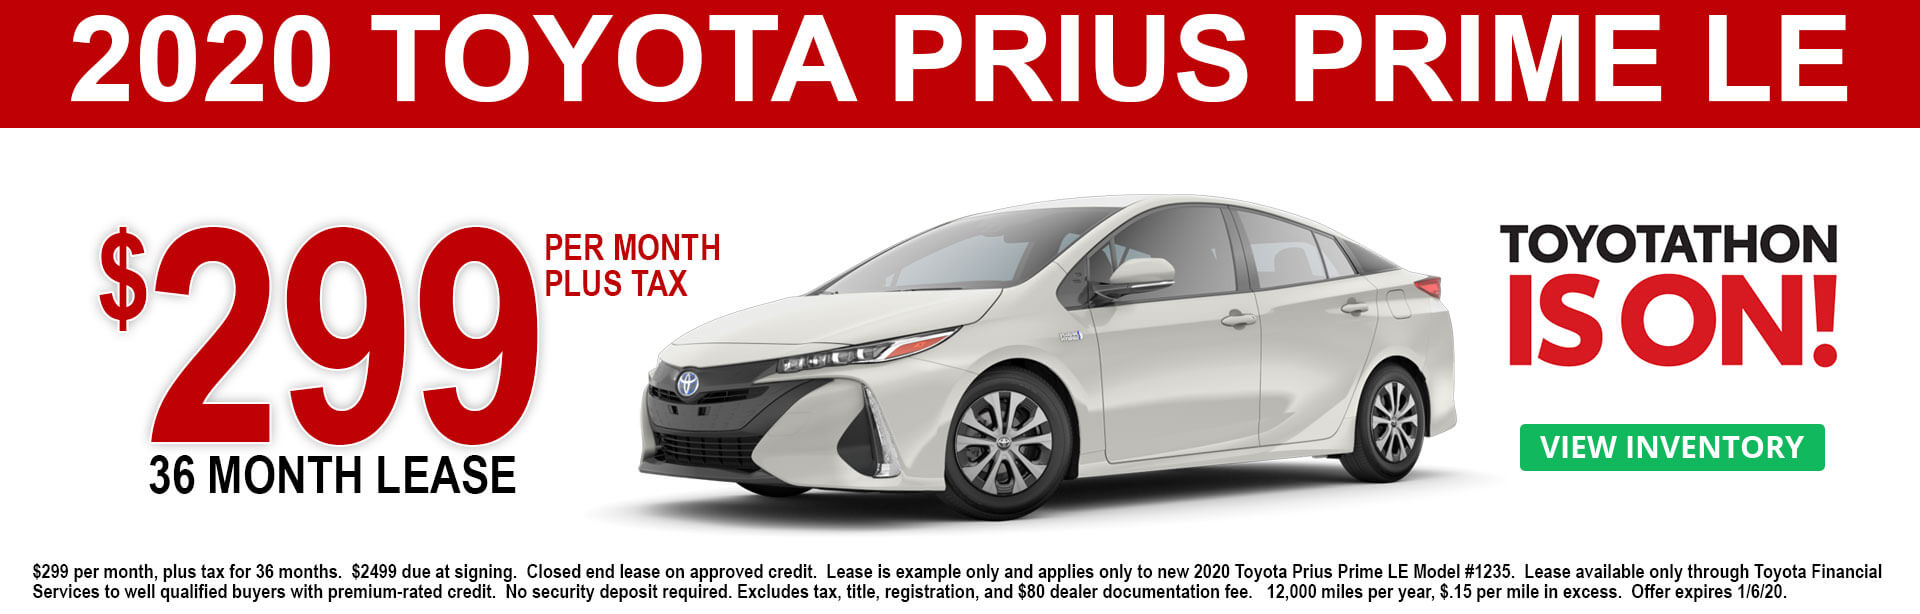 2020 Toyota Prius Prime LE Lease Offer $299 per month